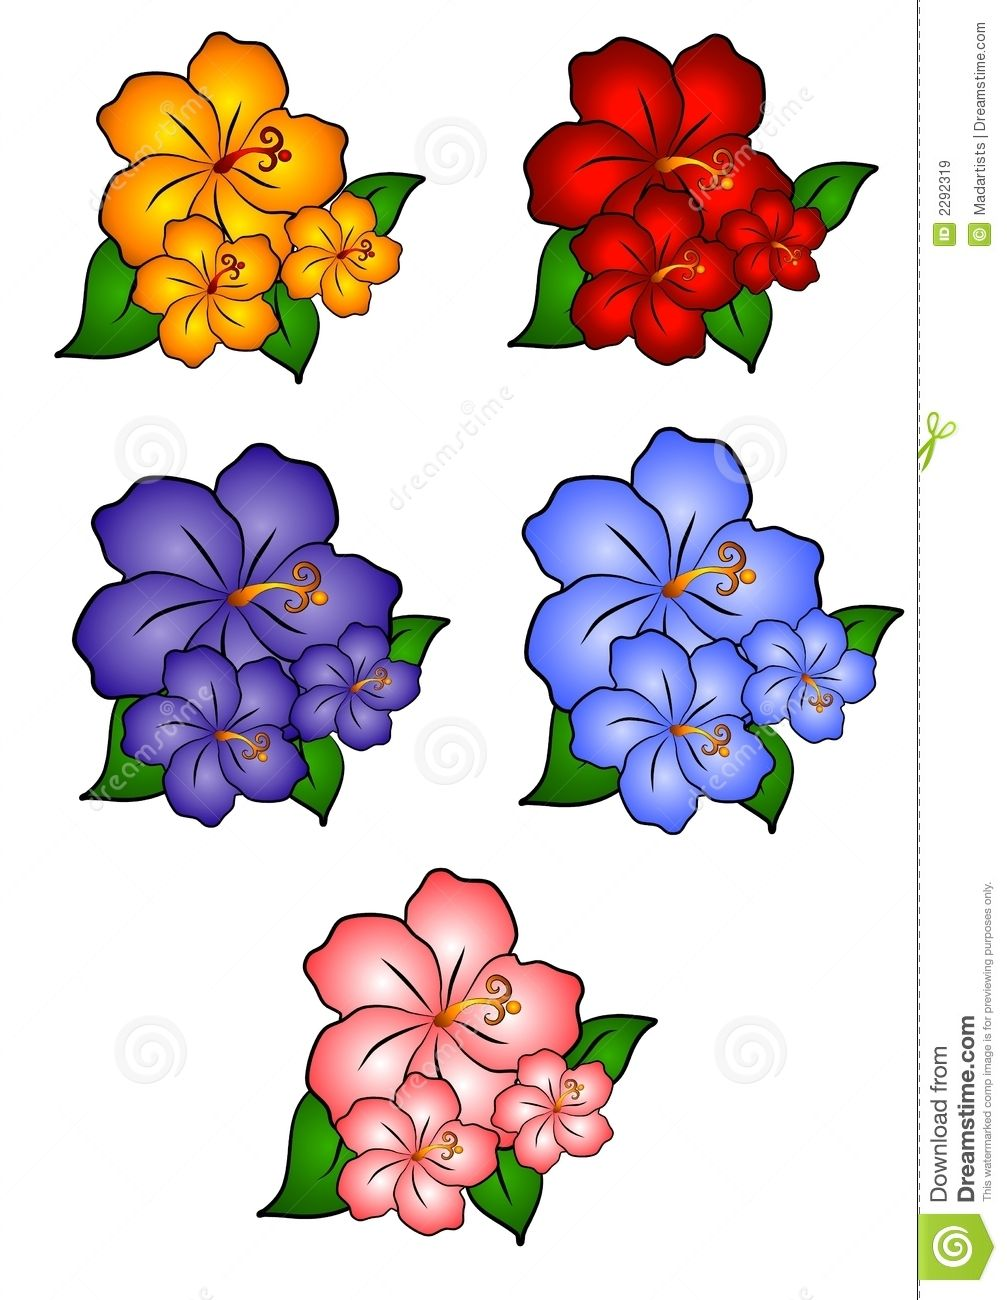 flower clip art free hawaiian flower border clip art 5 hawaiian rh pinterest com free flower clip art borders free flower clipart pictures